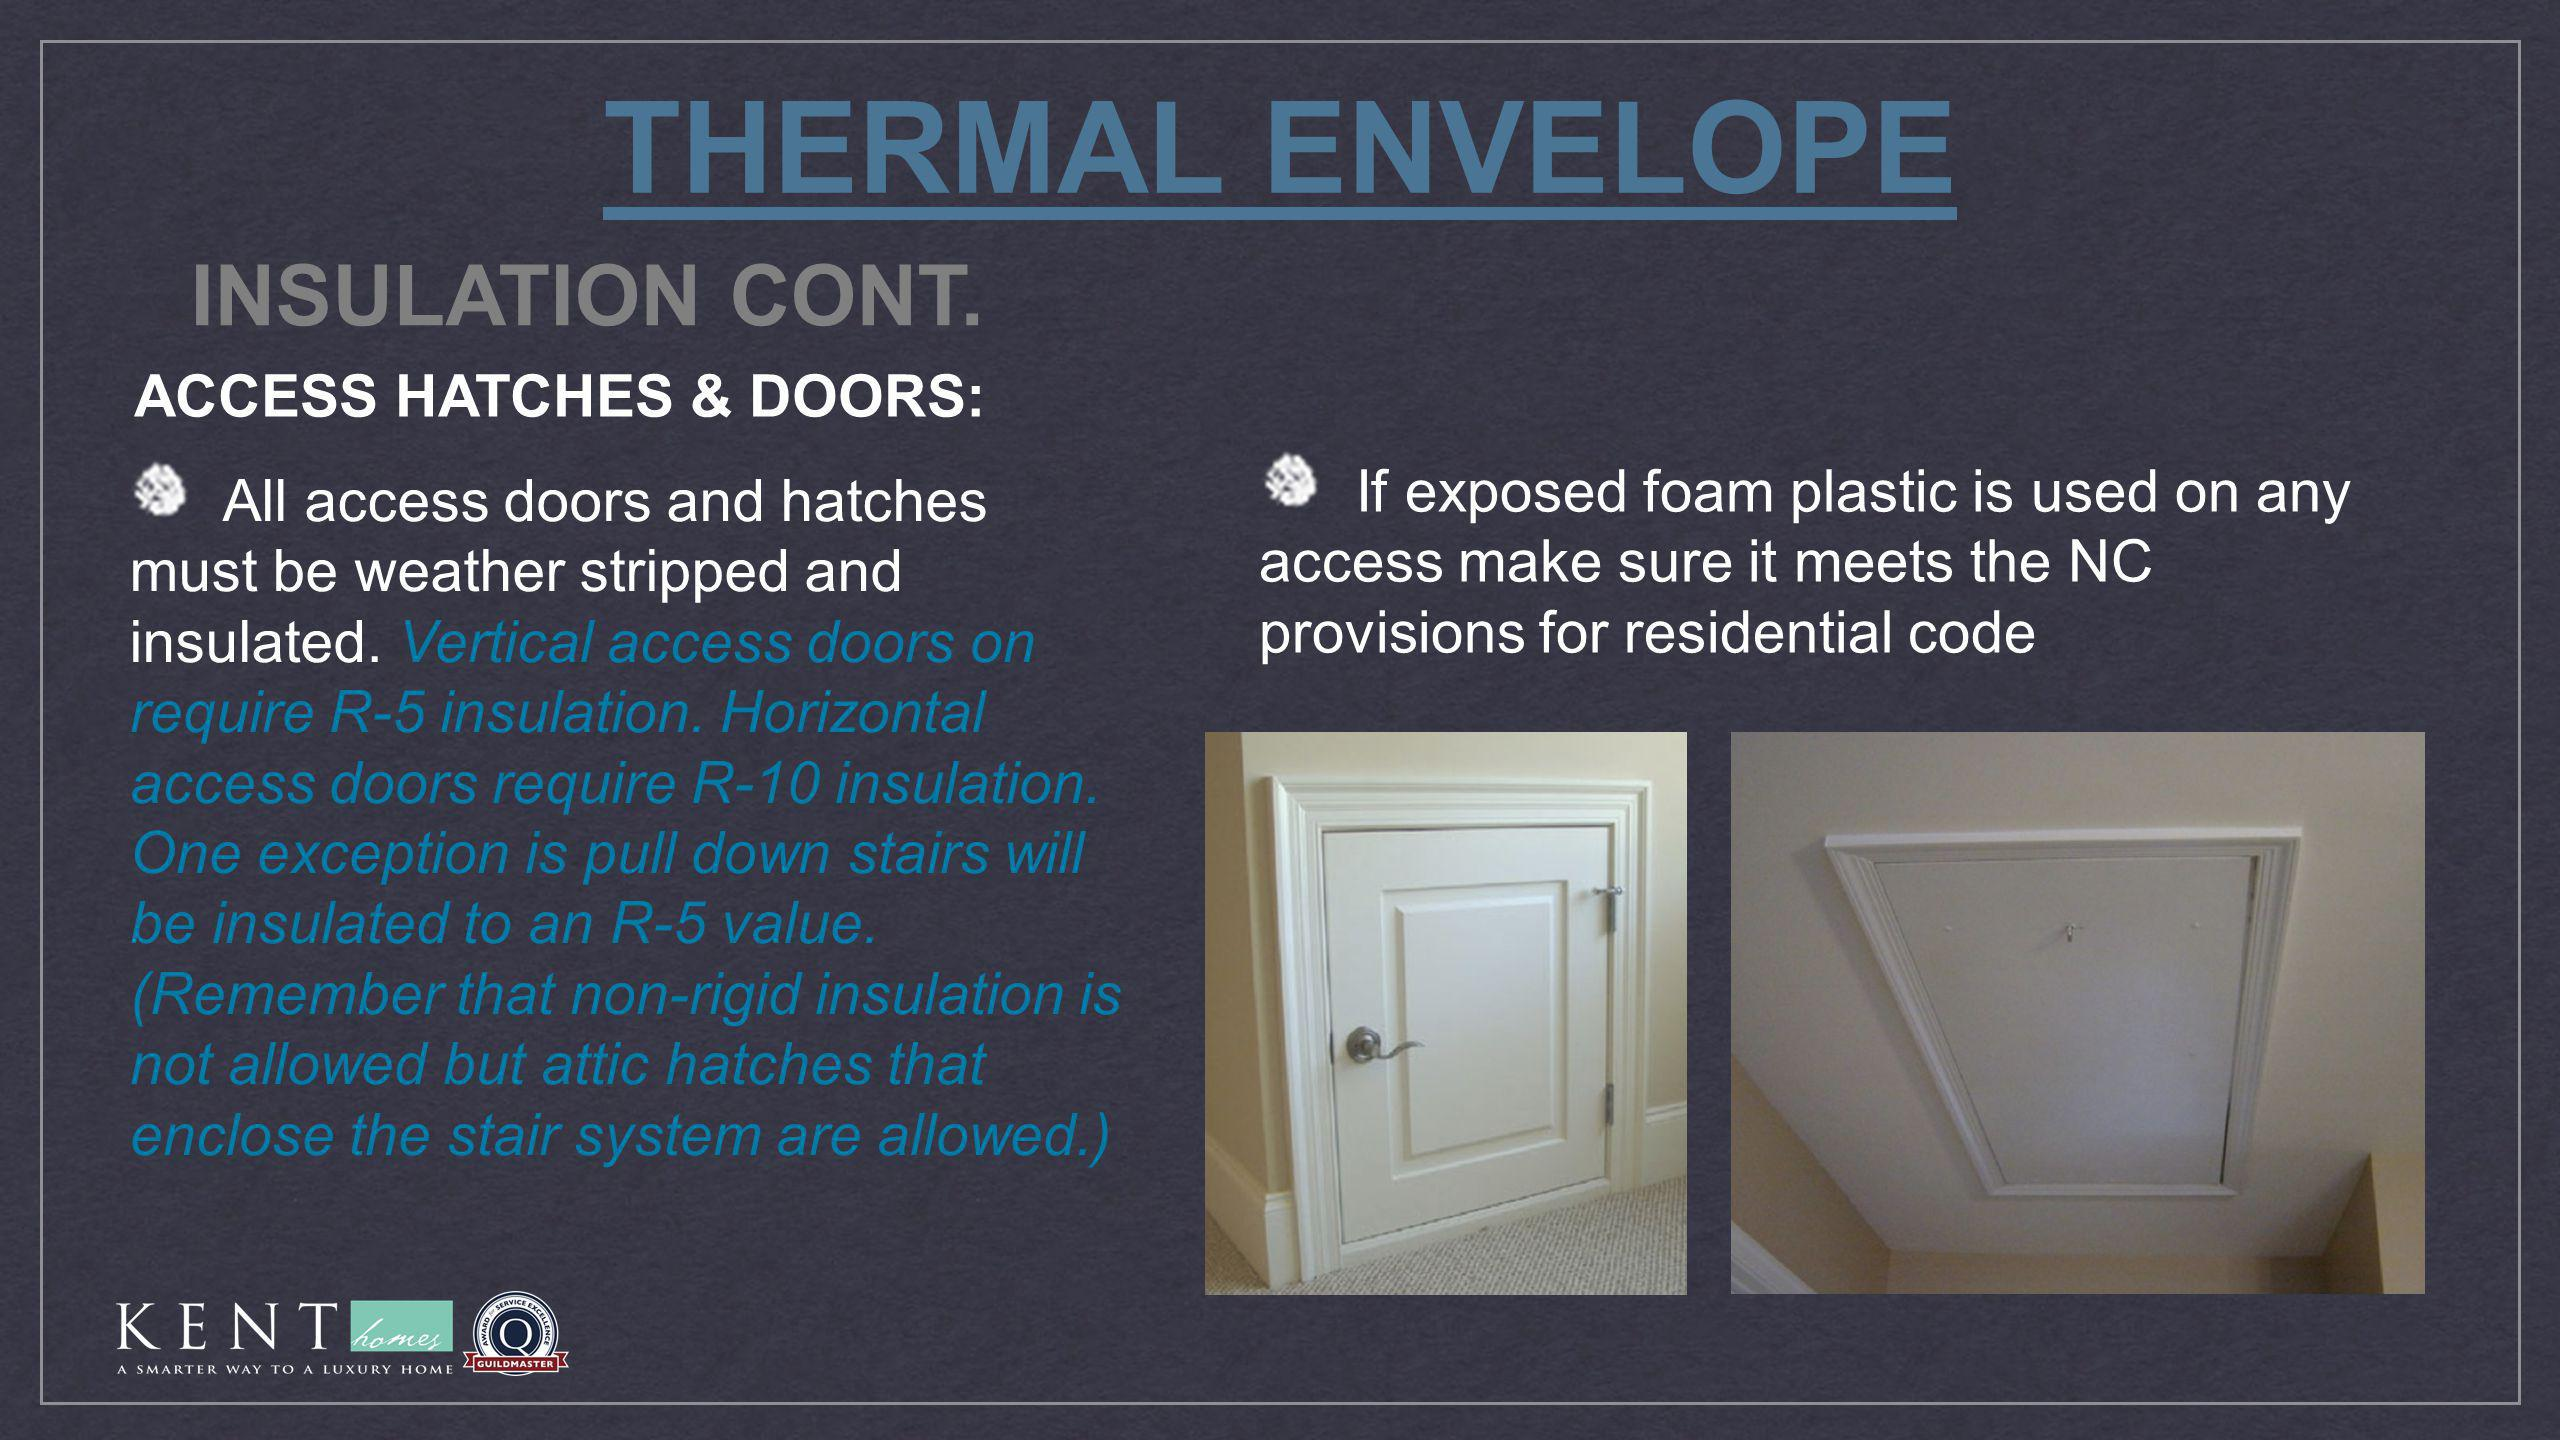 THERMAL ENVELOPE All access doors and hatches must be weather stripped and insulated. Vertical access doors on require R-5 insulation. Horizontal acce